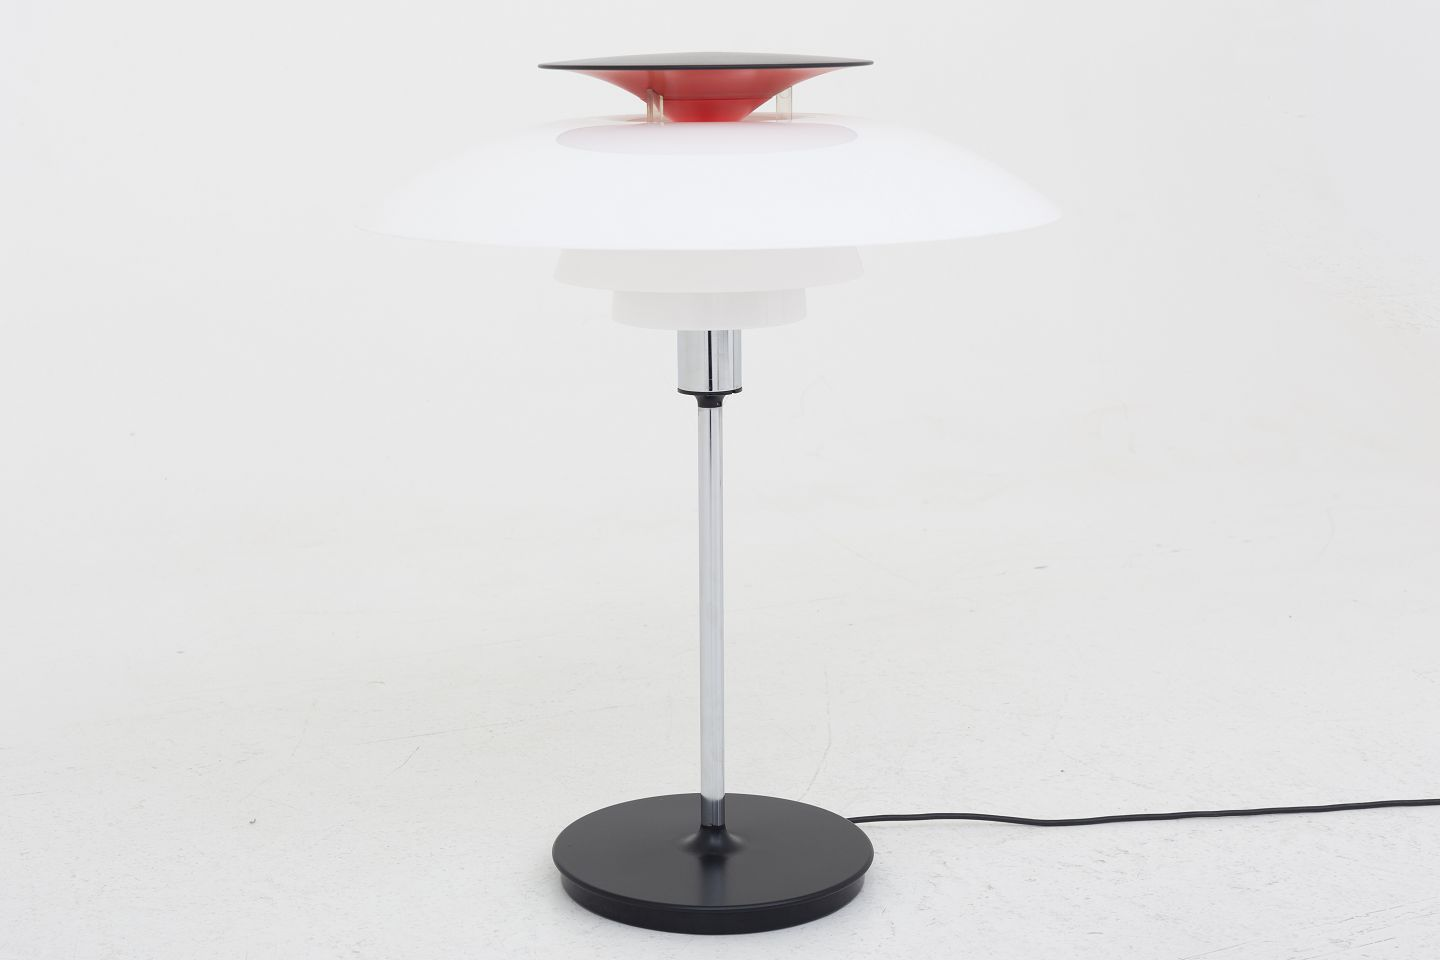 Worldantique poul henningsen louis poulsen ph 80 table poul henningsen louis poulsen ph 80 table lamp with acrylic shade and black foot 1 pc in stock good condition location klassik flagship store mozeypictures Choice Image